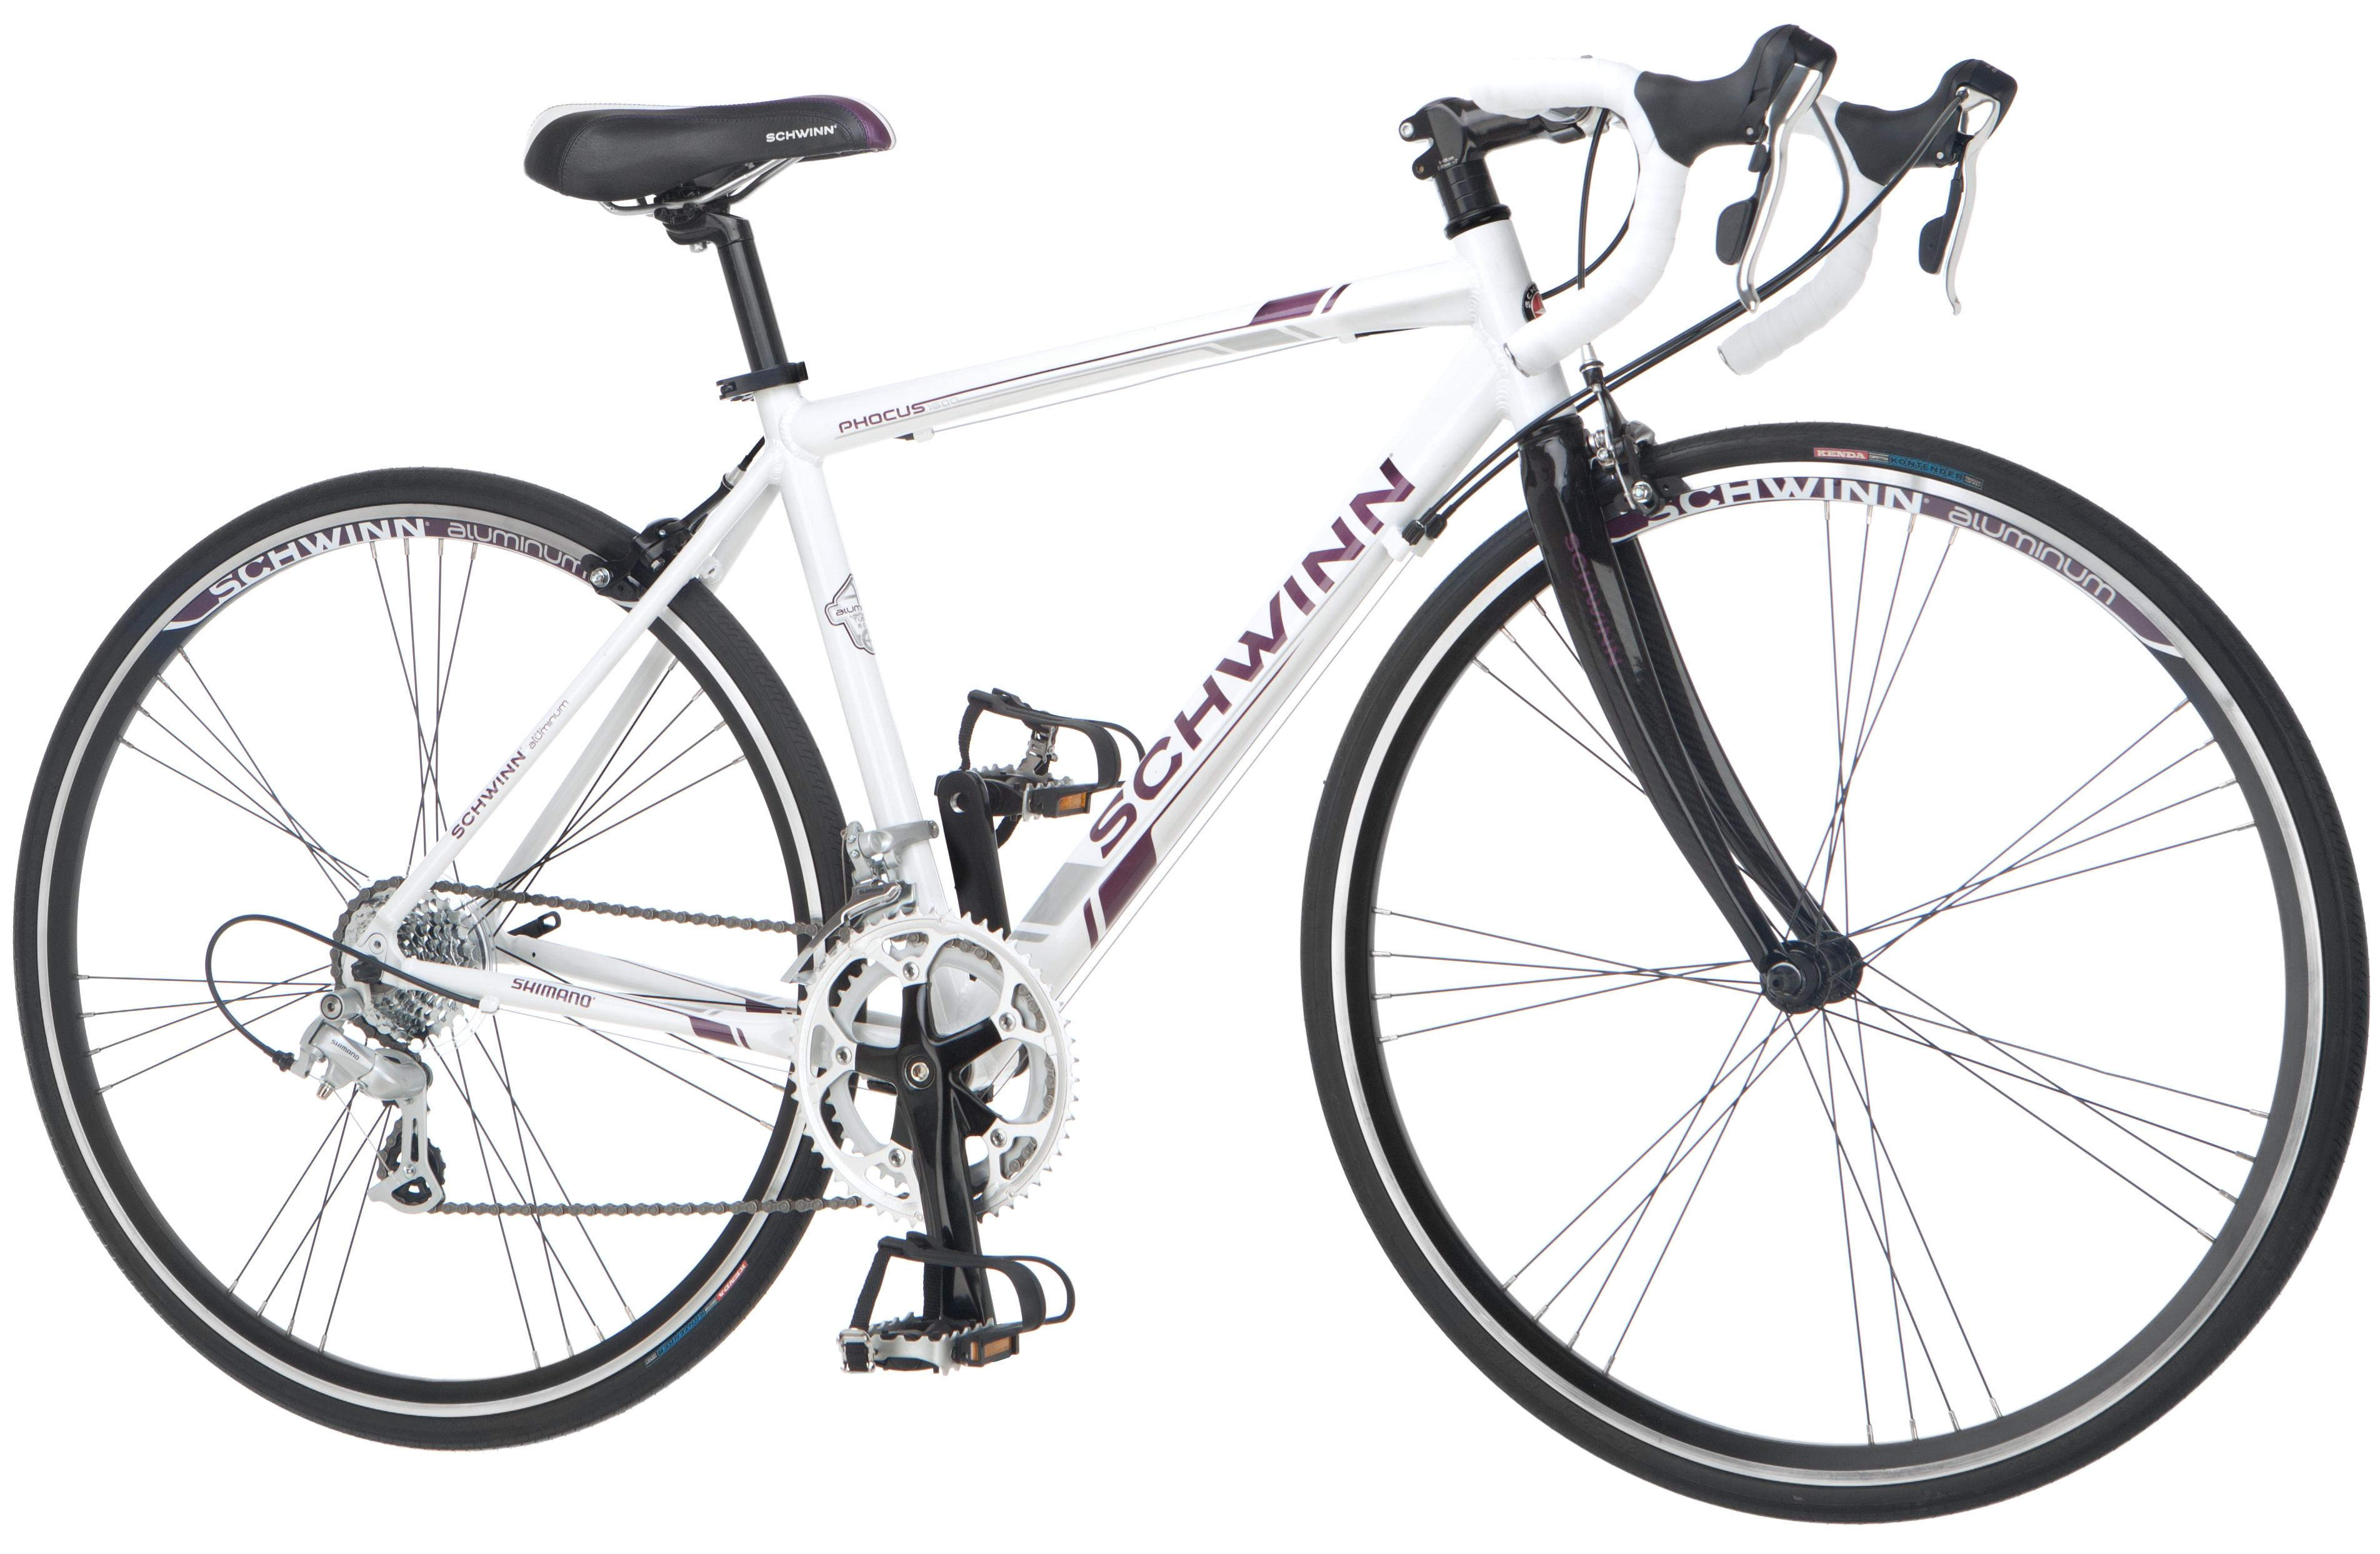 Schwinn Phocus Bicycle By Oj Commerce S